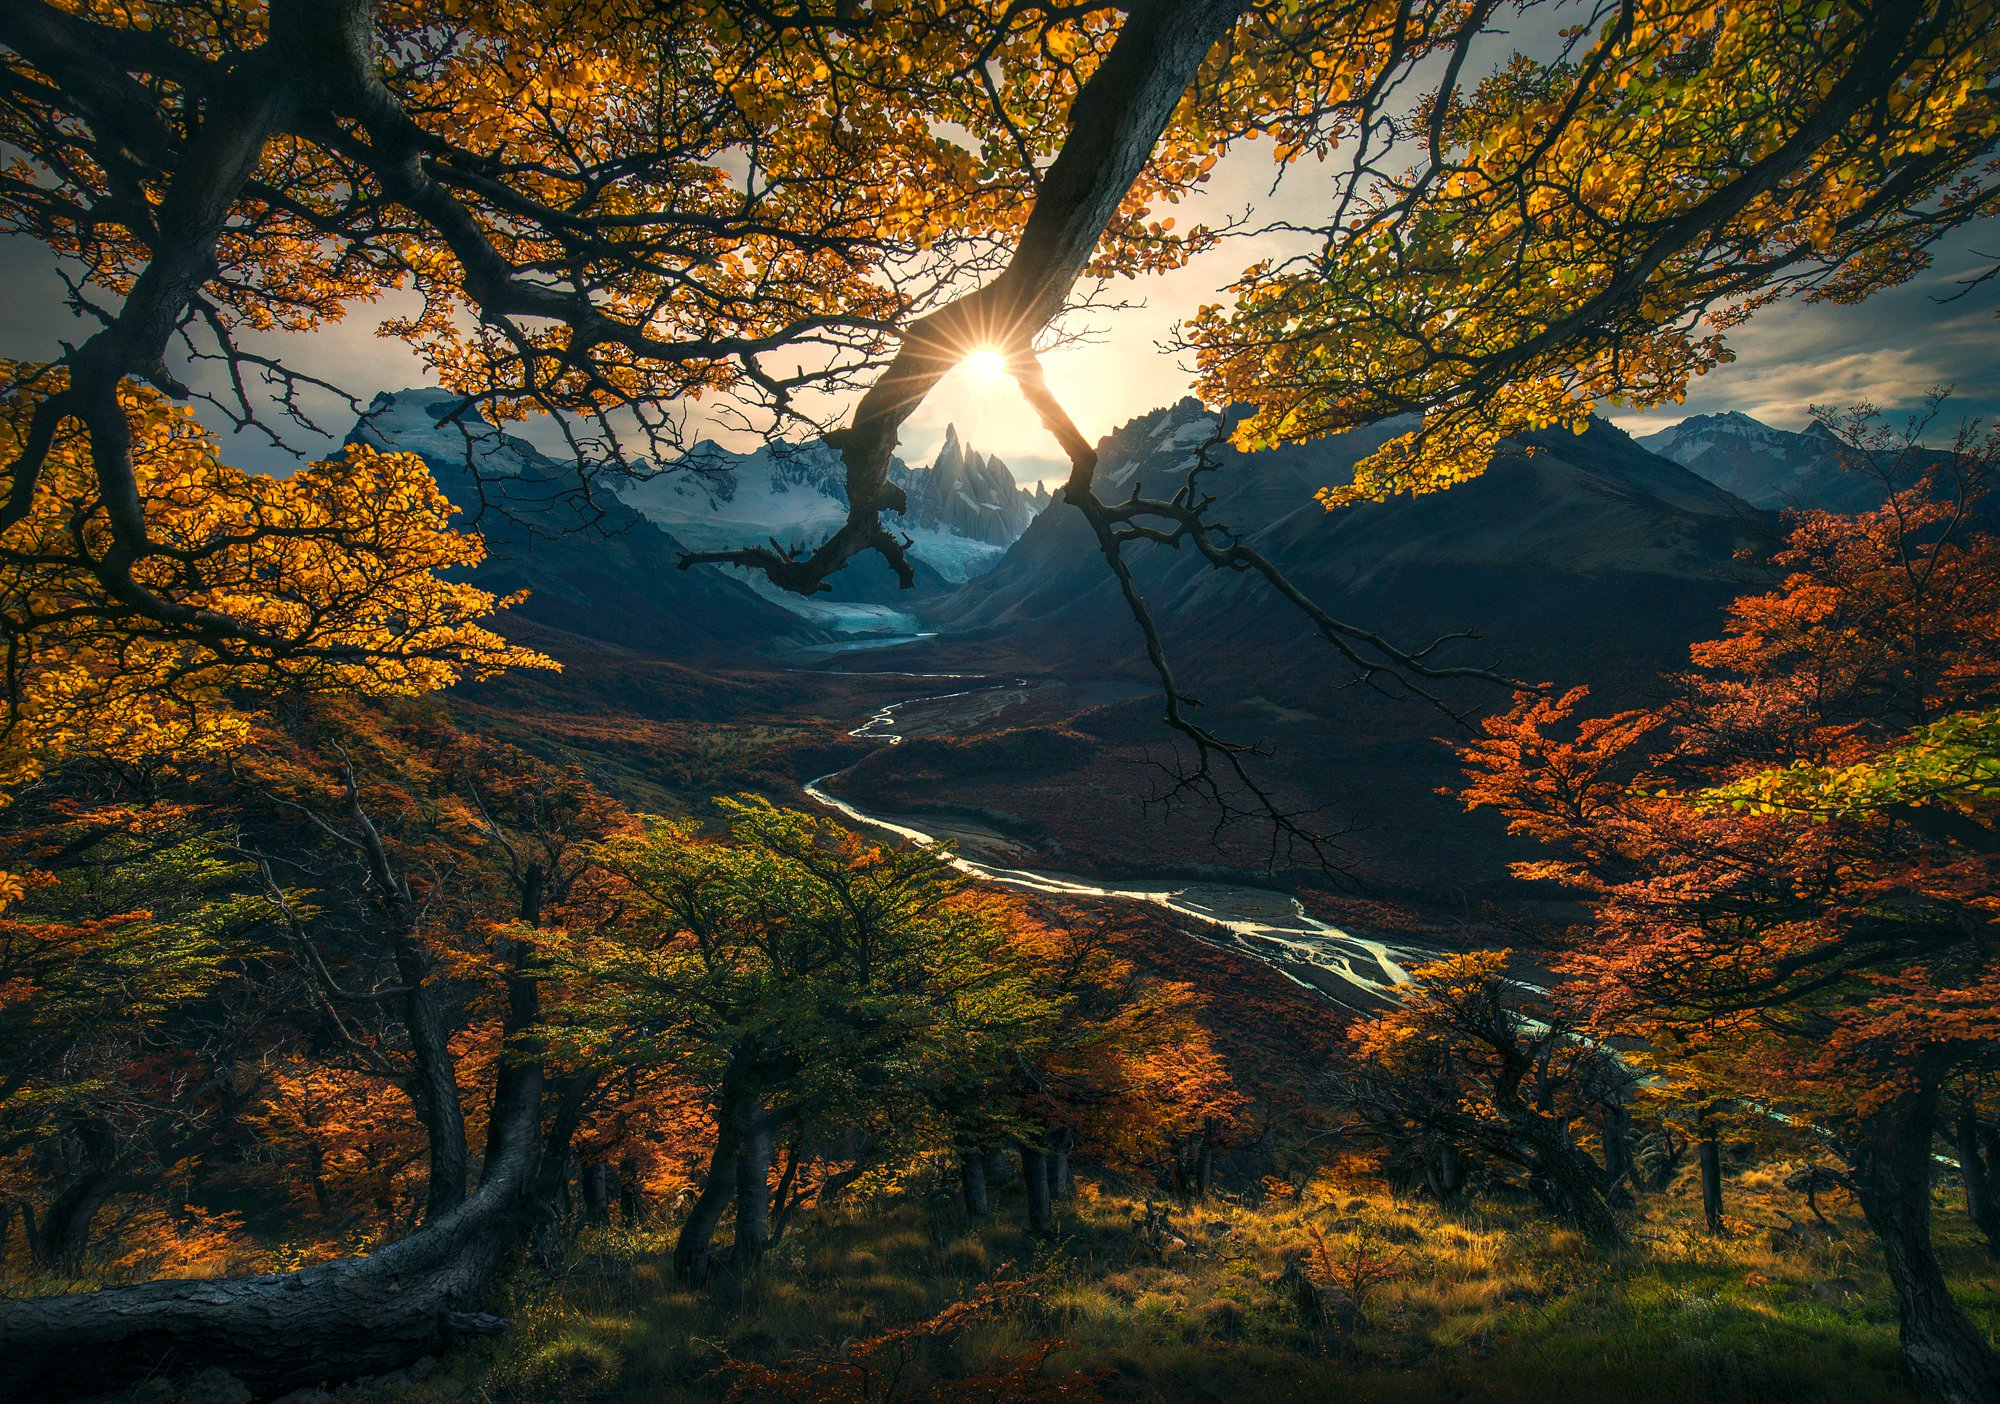 By Max Rive #mountains #nature #landscape #photo #photography https://t.co/x91fCcRZm8